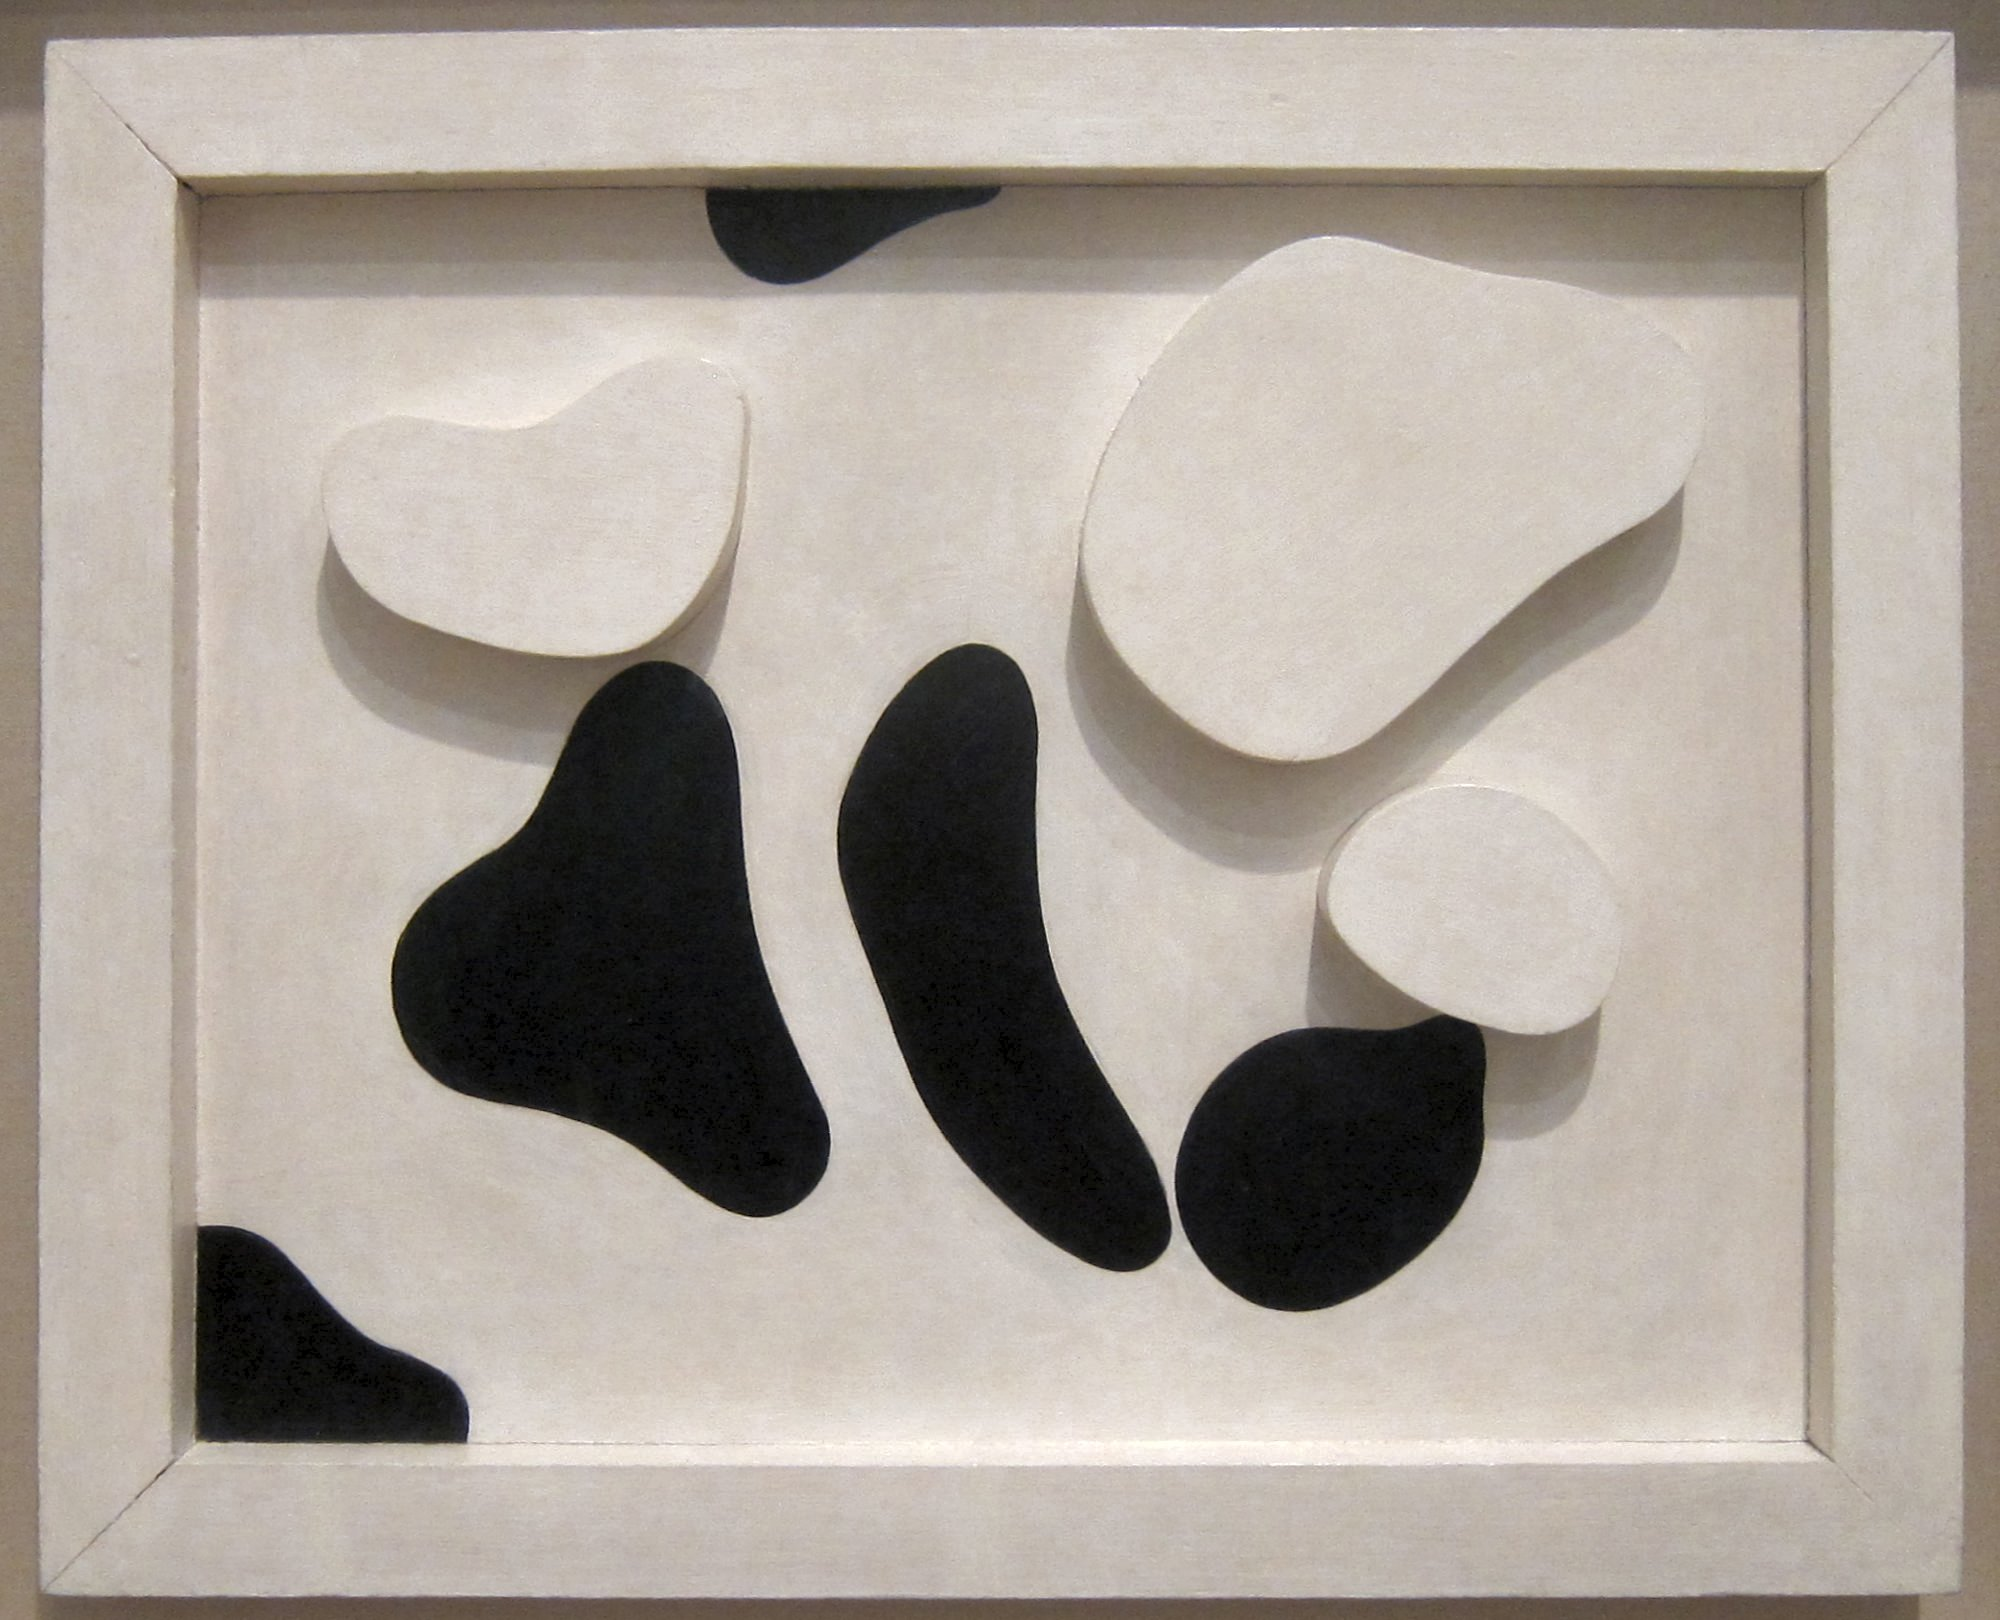 Constellation According to the Laws of Chance, aluminium sculpture by Jean Arp (Hans Arp), c. 1930, Tate Modern